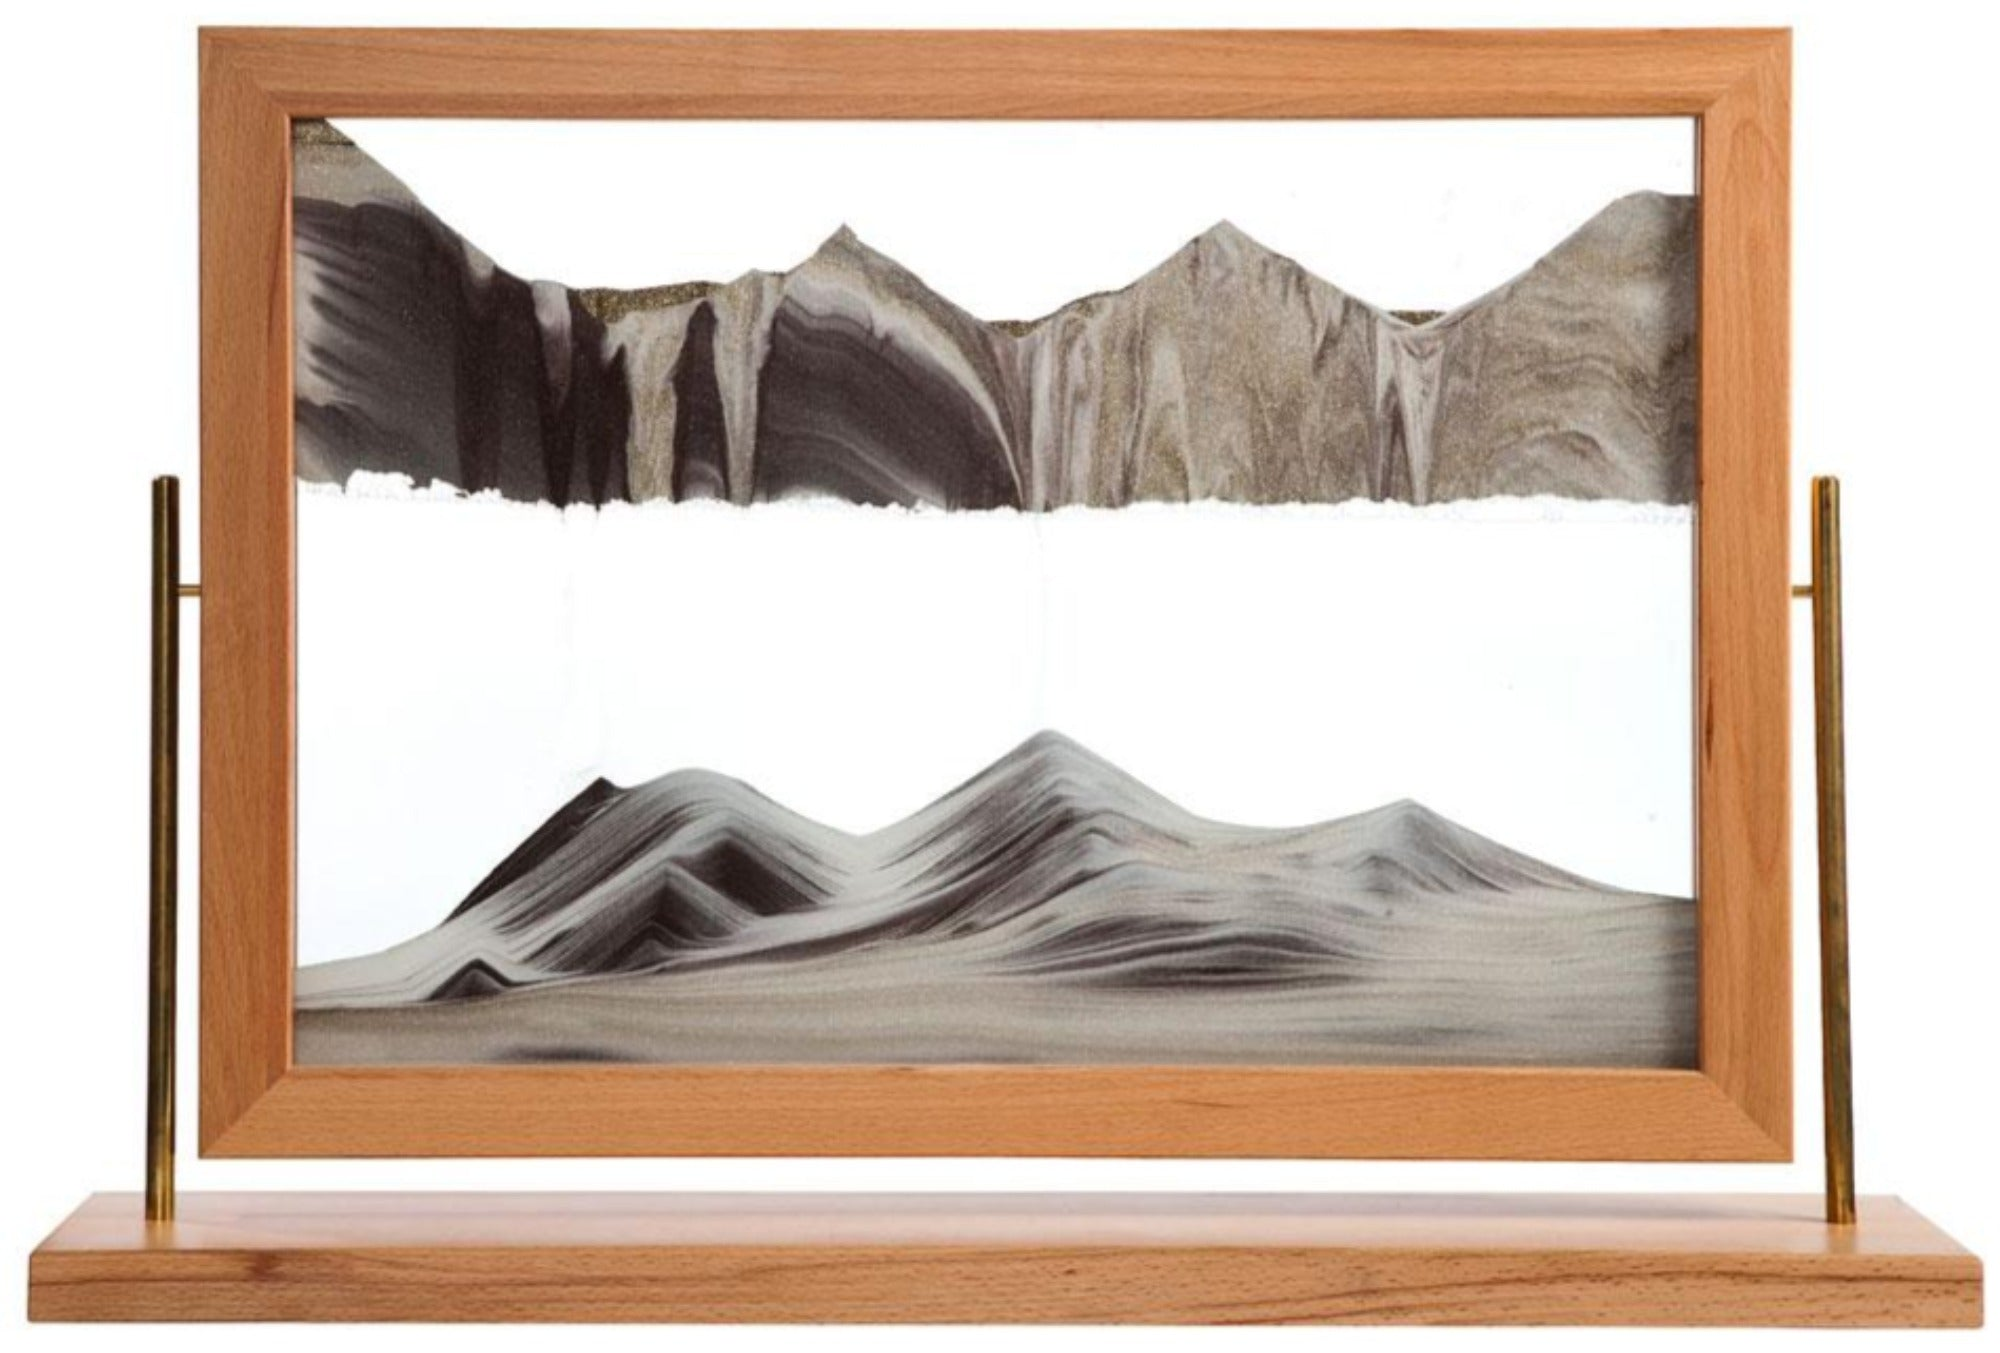 Picture of Sahara Sand Art- By Klaus Bosch Sold By MovingSandArt.com